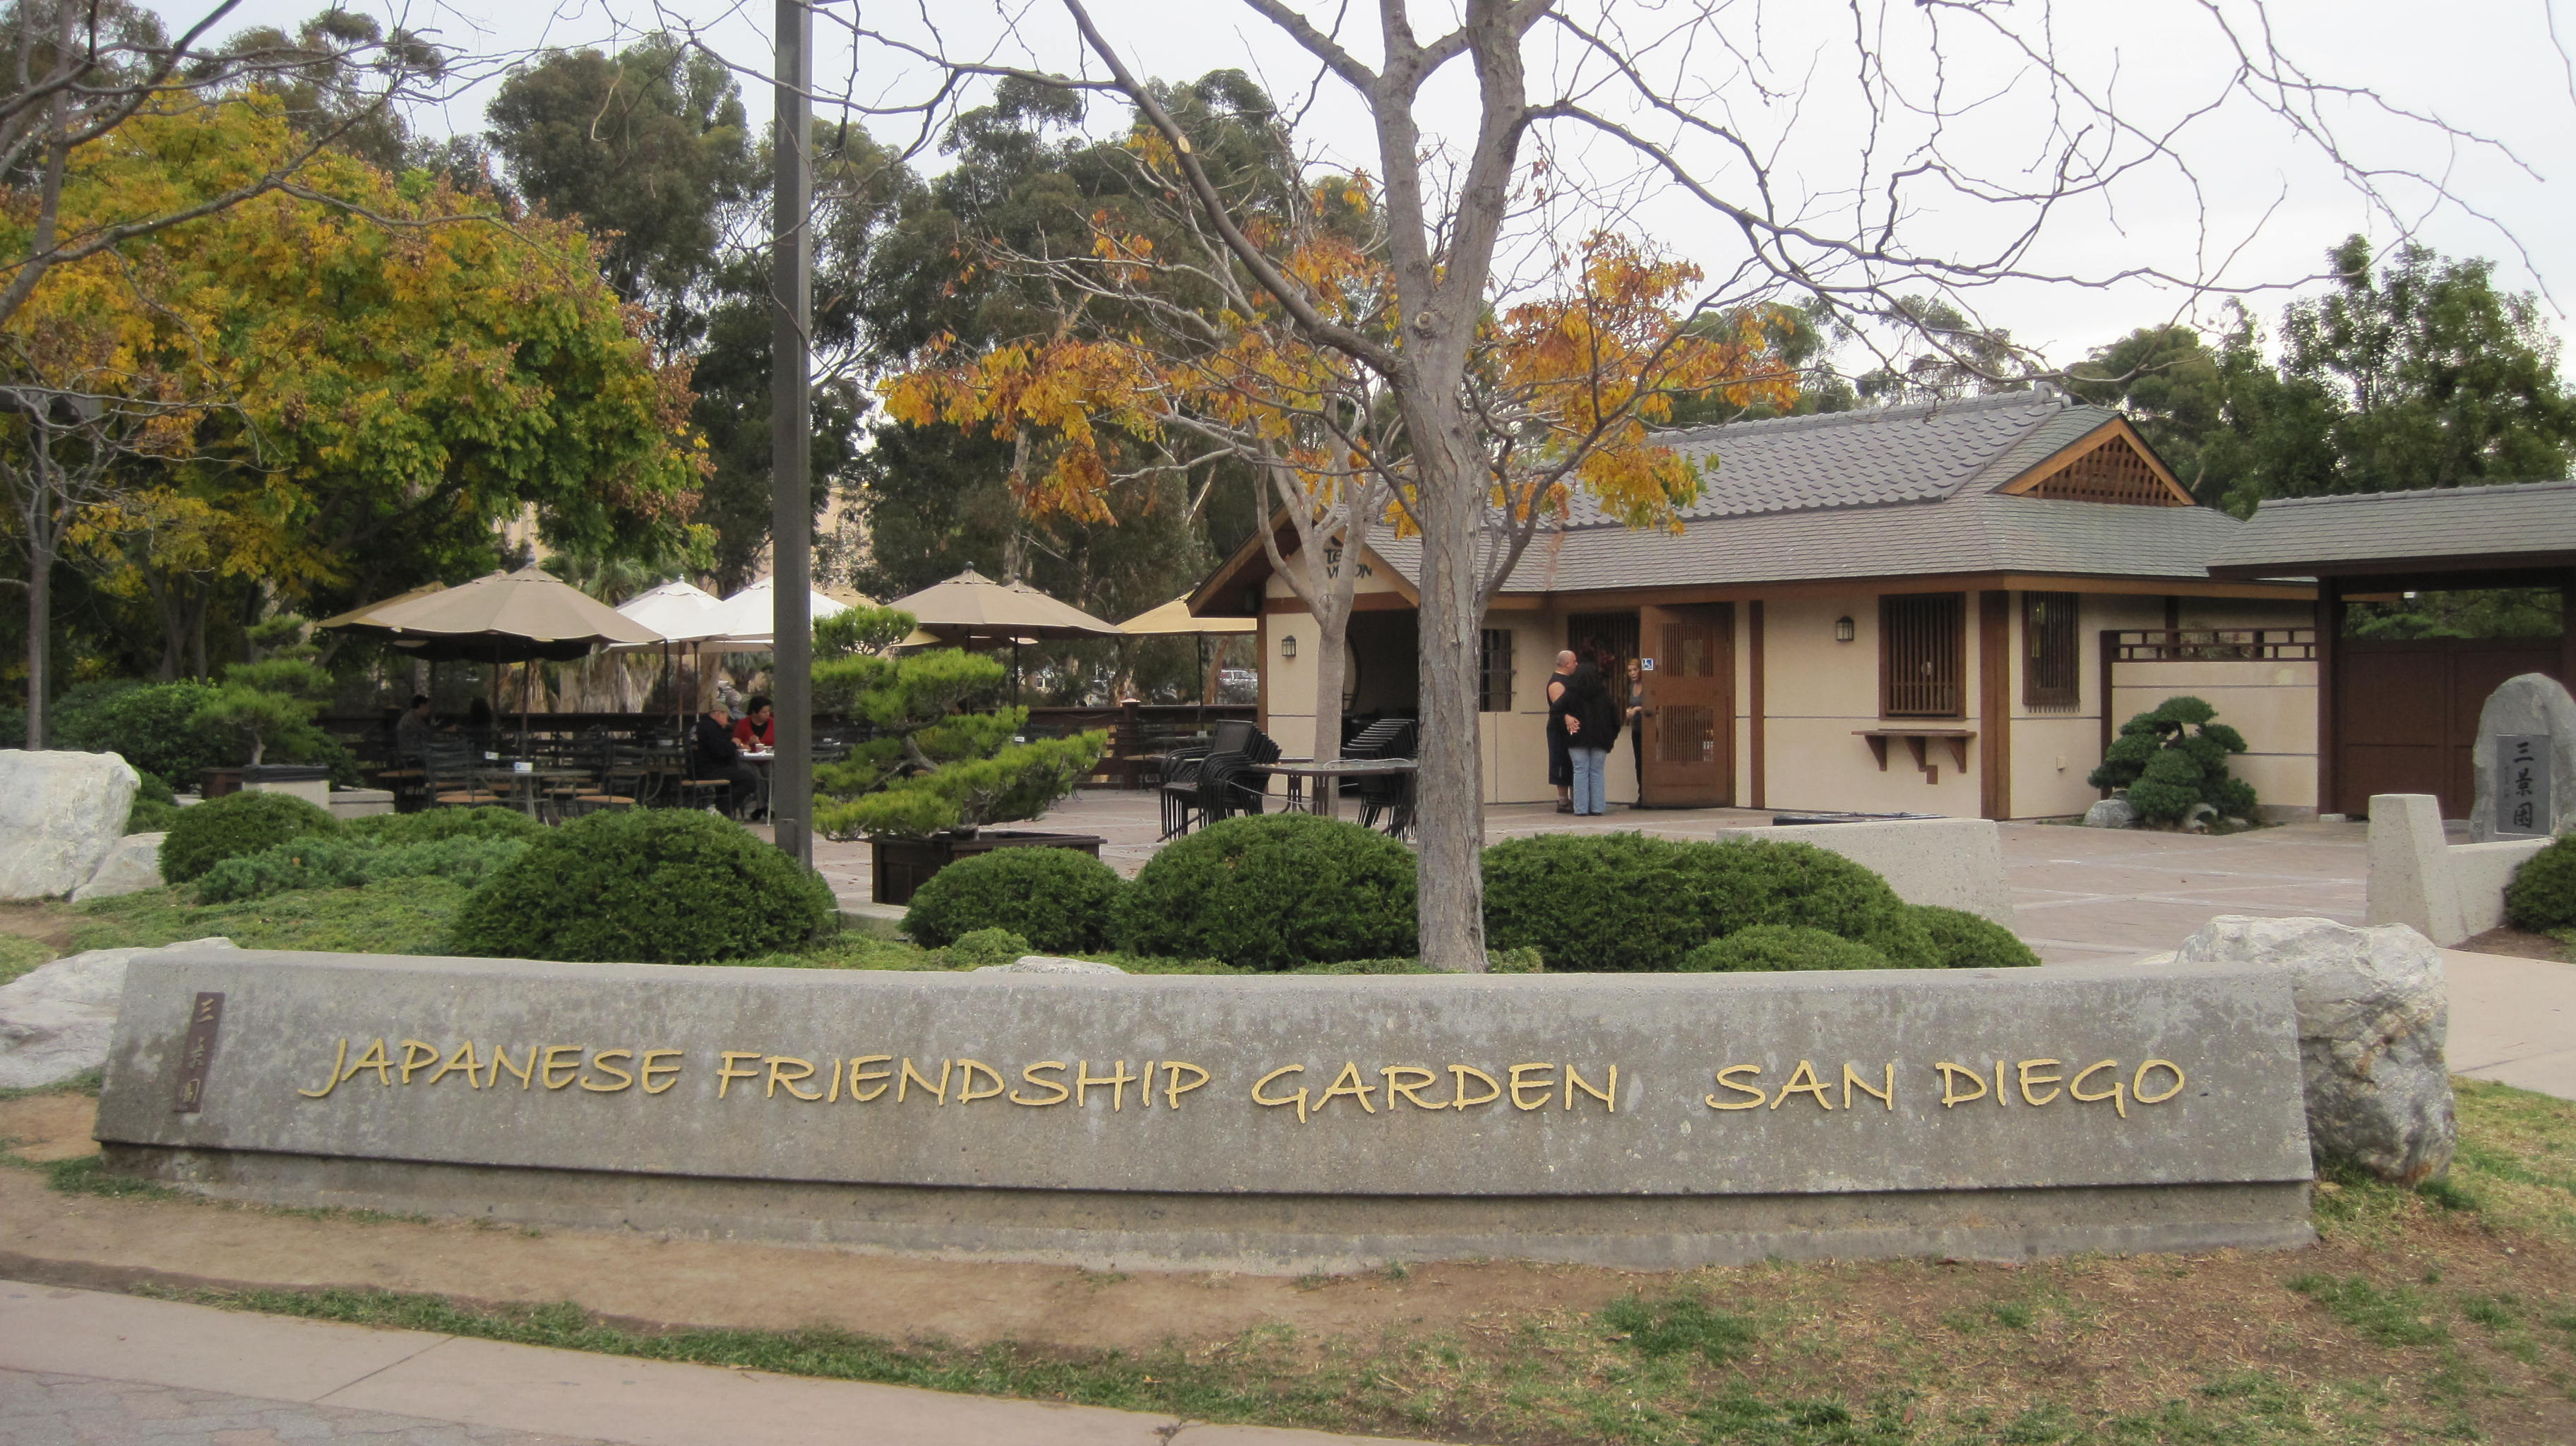 file japanese friendship garden balboa park 1 jpg wikimedia commons